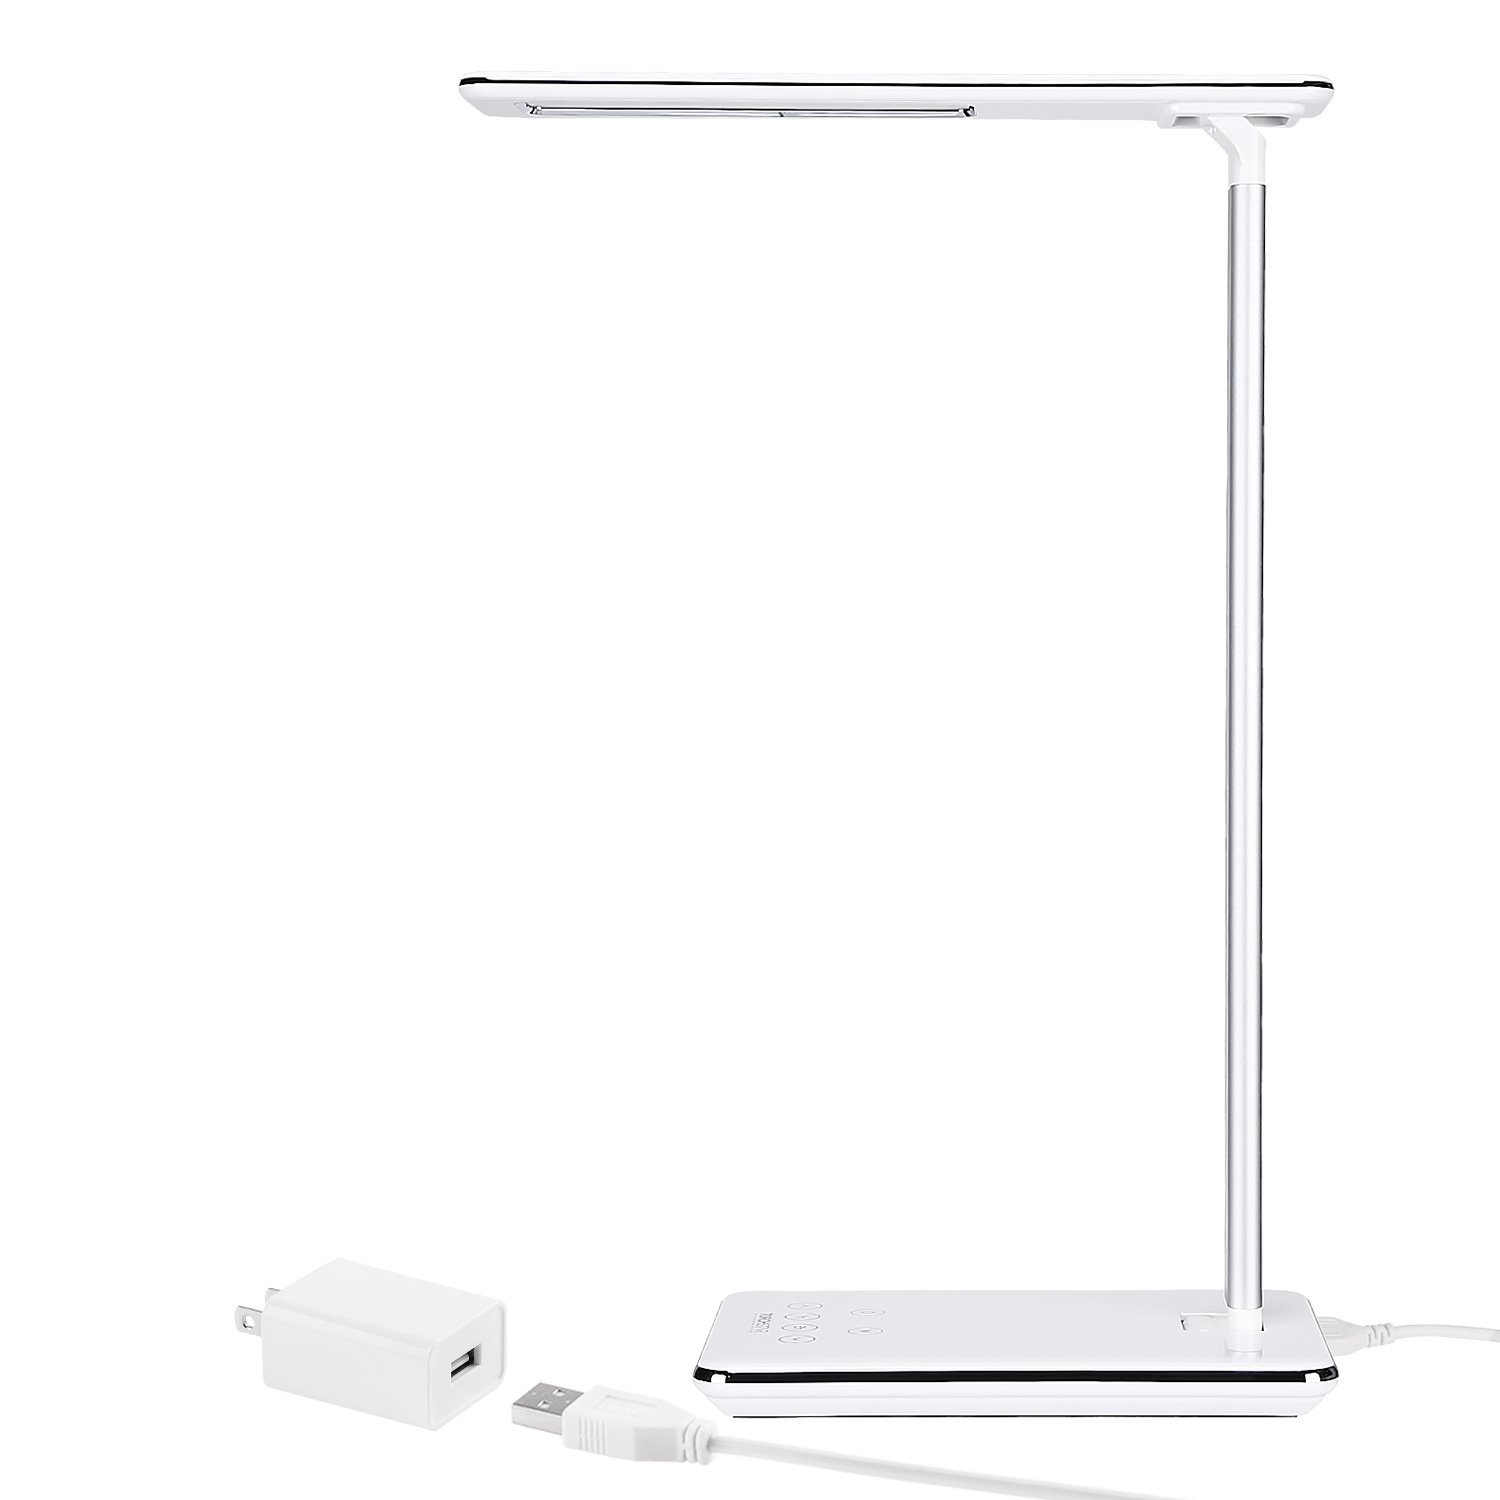 TORCHSTAR Dimmable LED Desk Lamp, 4 Lighting Modes (Reading Studying Relaxation Bedtime), Fully Adjustable Brightness,... by